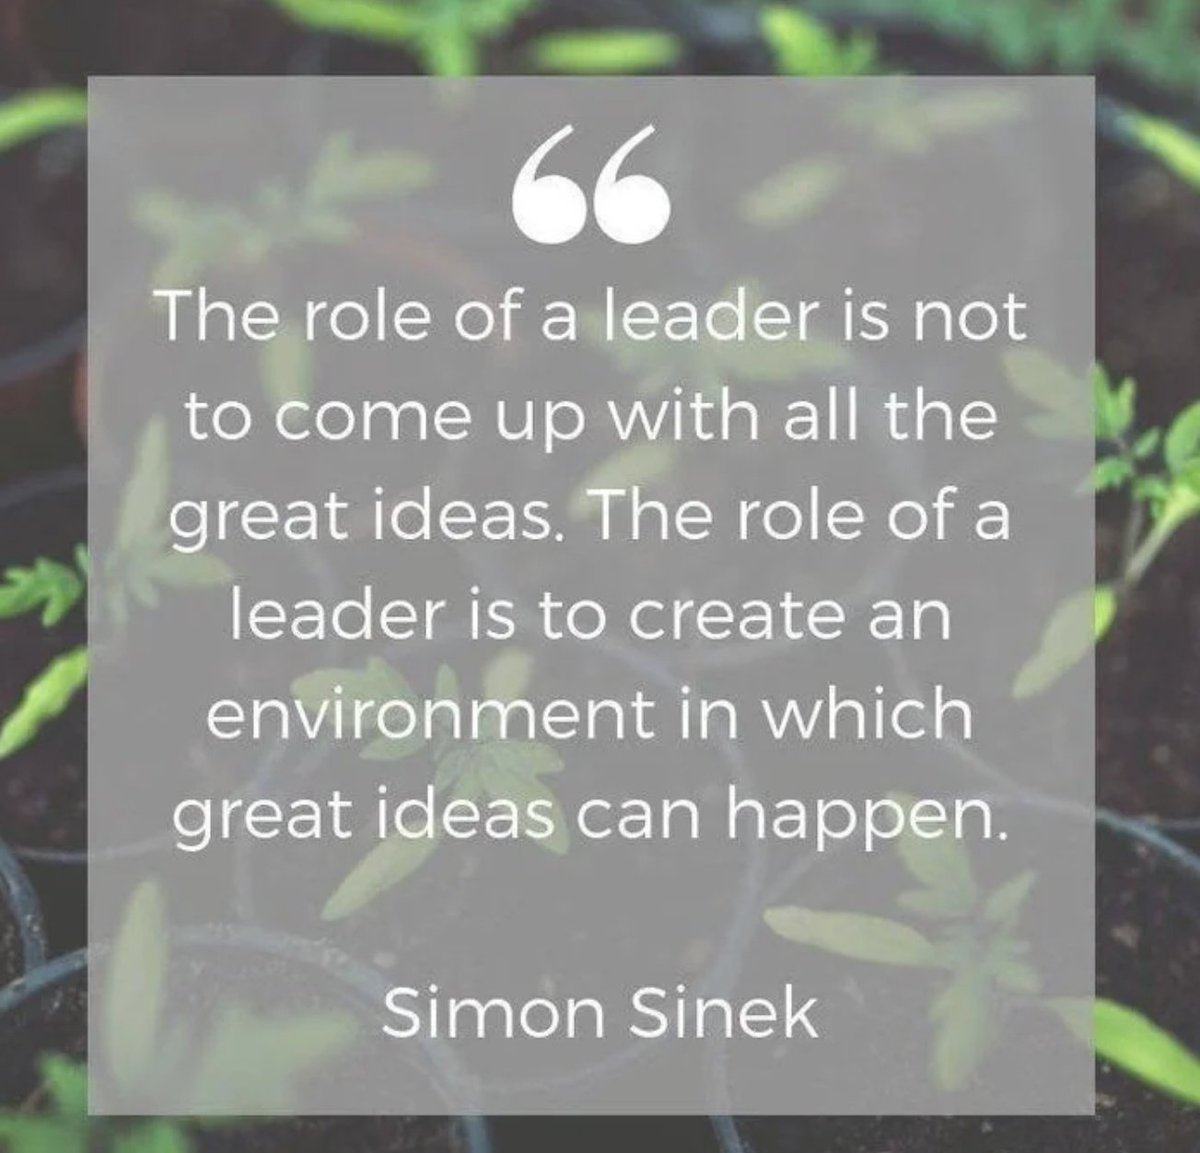 Do you work in an environment where great ideas can happen? Your answer matters.